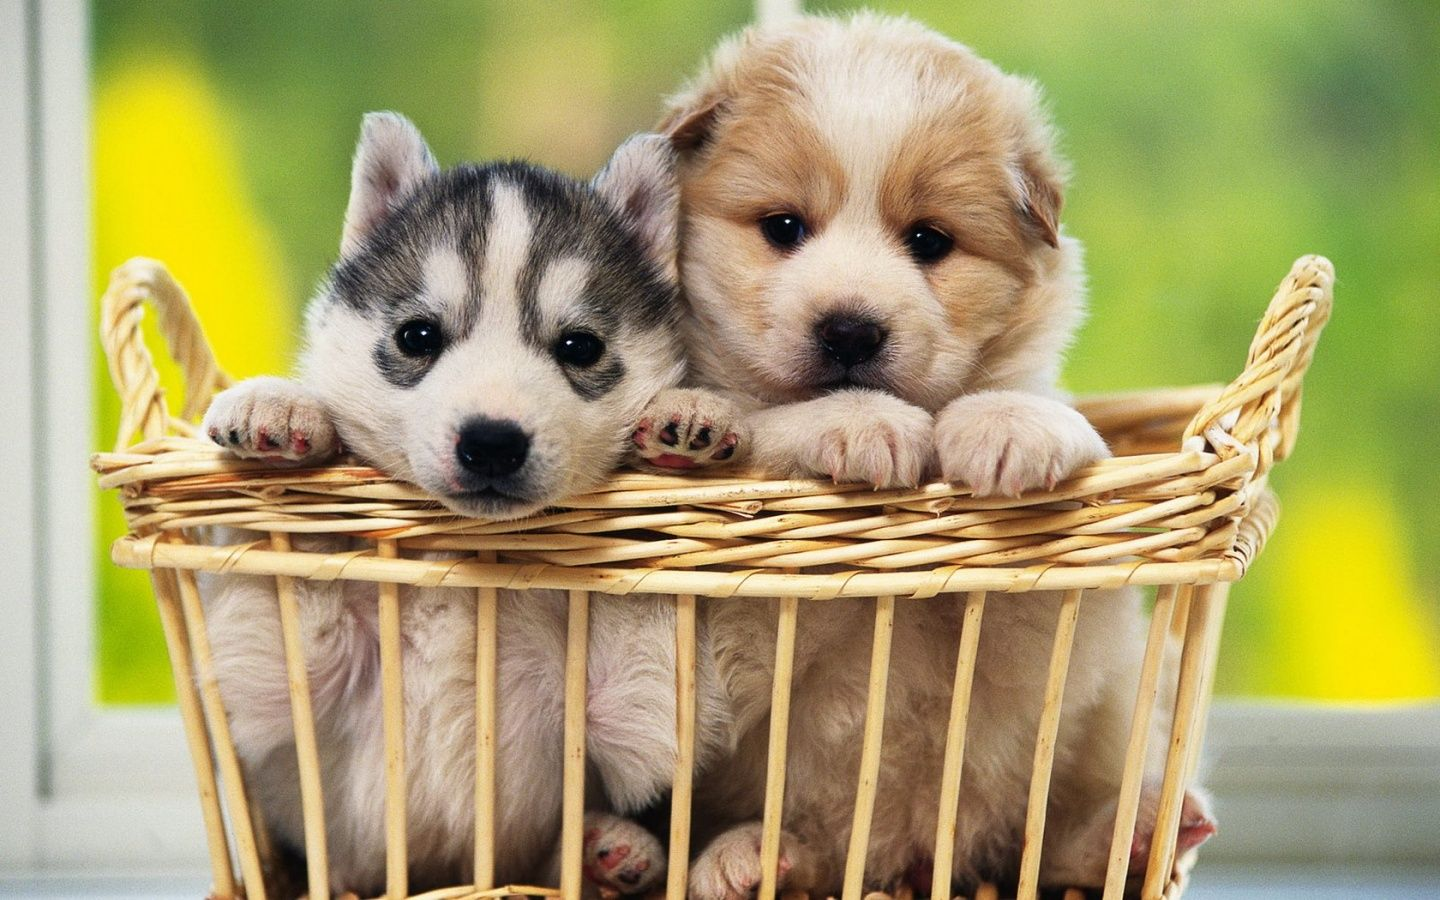 Cute Dogs Hd Wallpapers Free Download Cute Dogs Wallpapers For